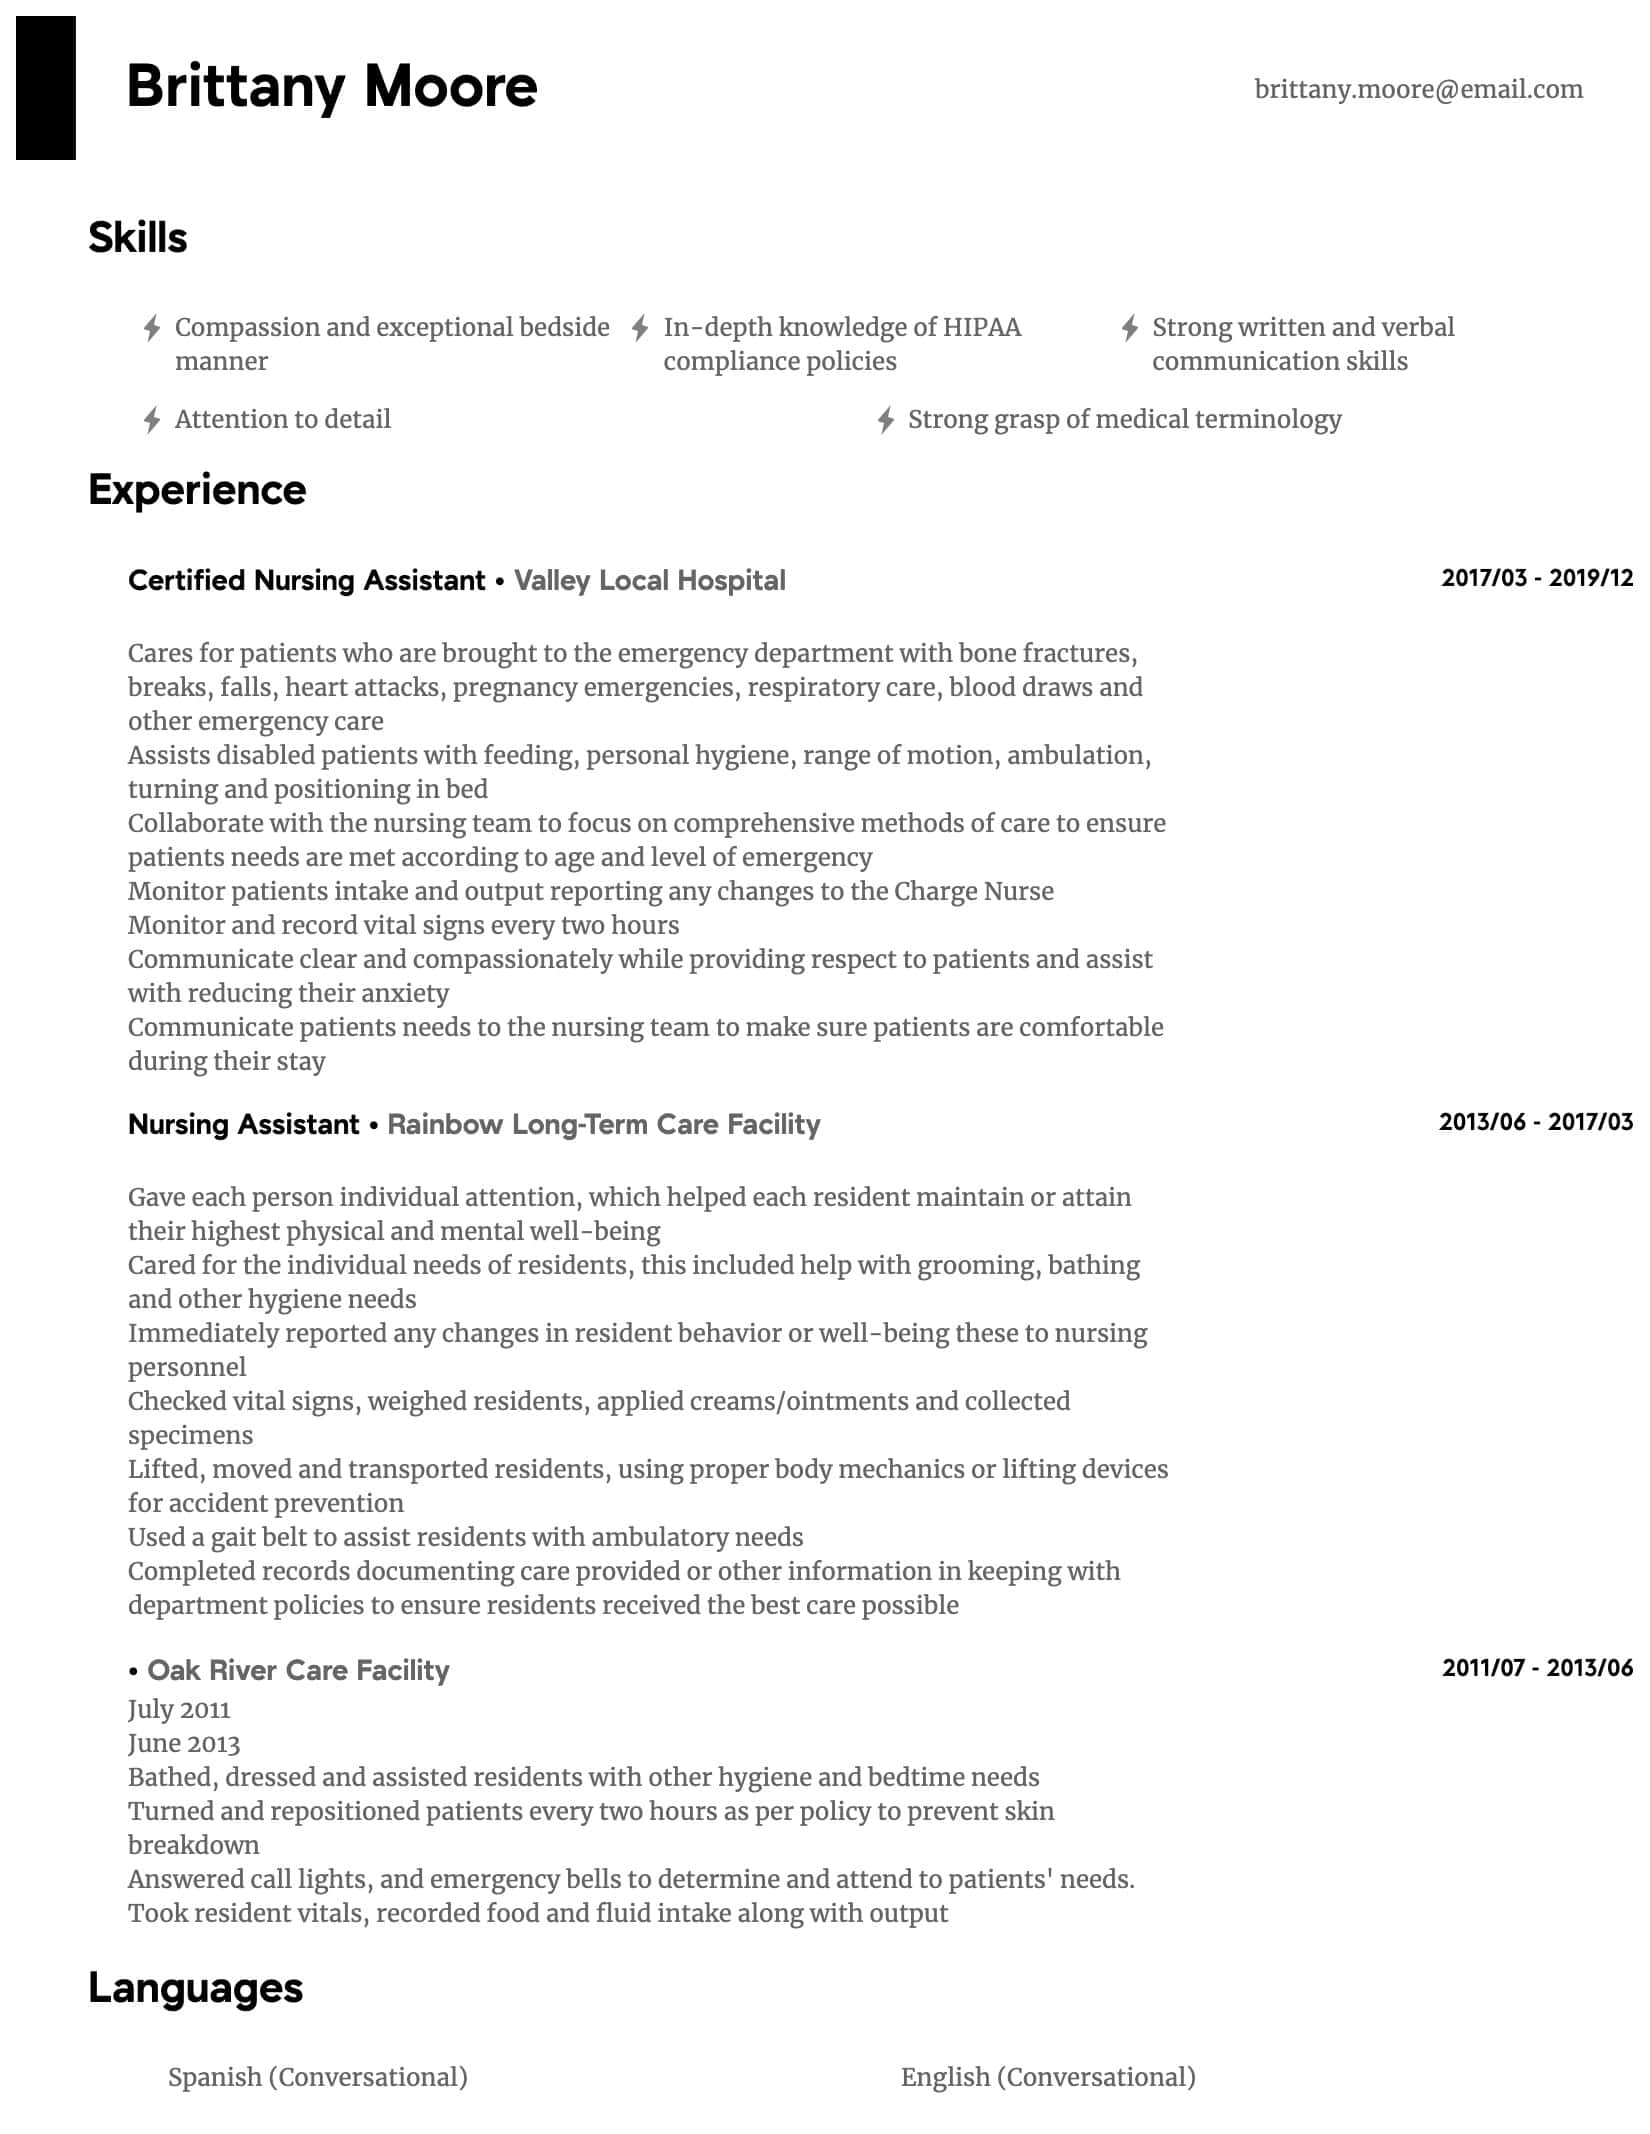 nursing assistant resume samples all experience levels nurse aide examples intermediate Resume Nurse Aide Resume Examples